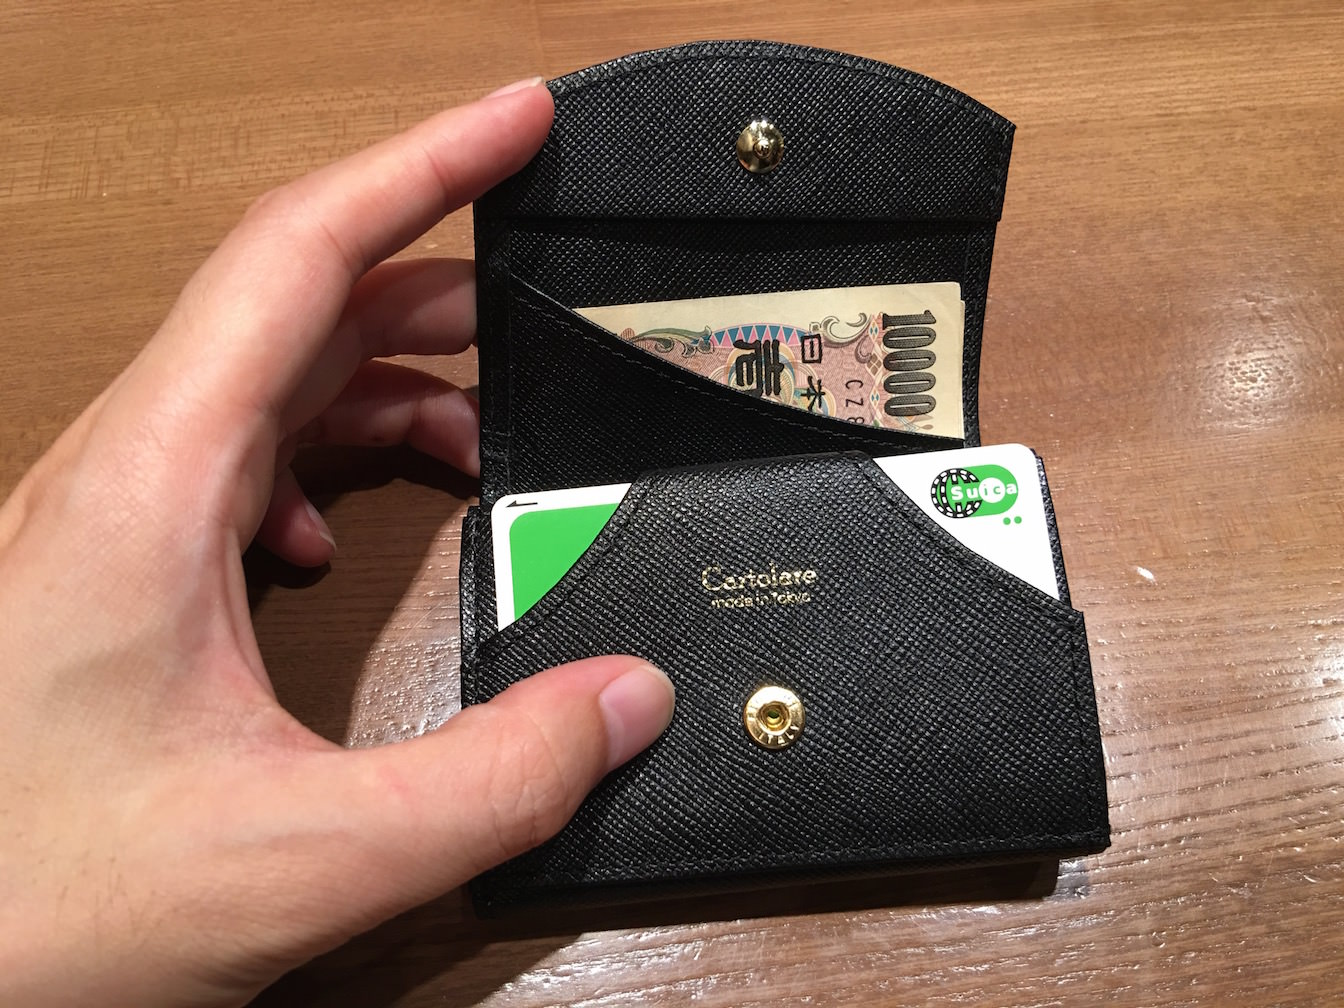 Hammock wallet compact first impression 13